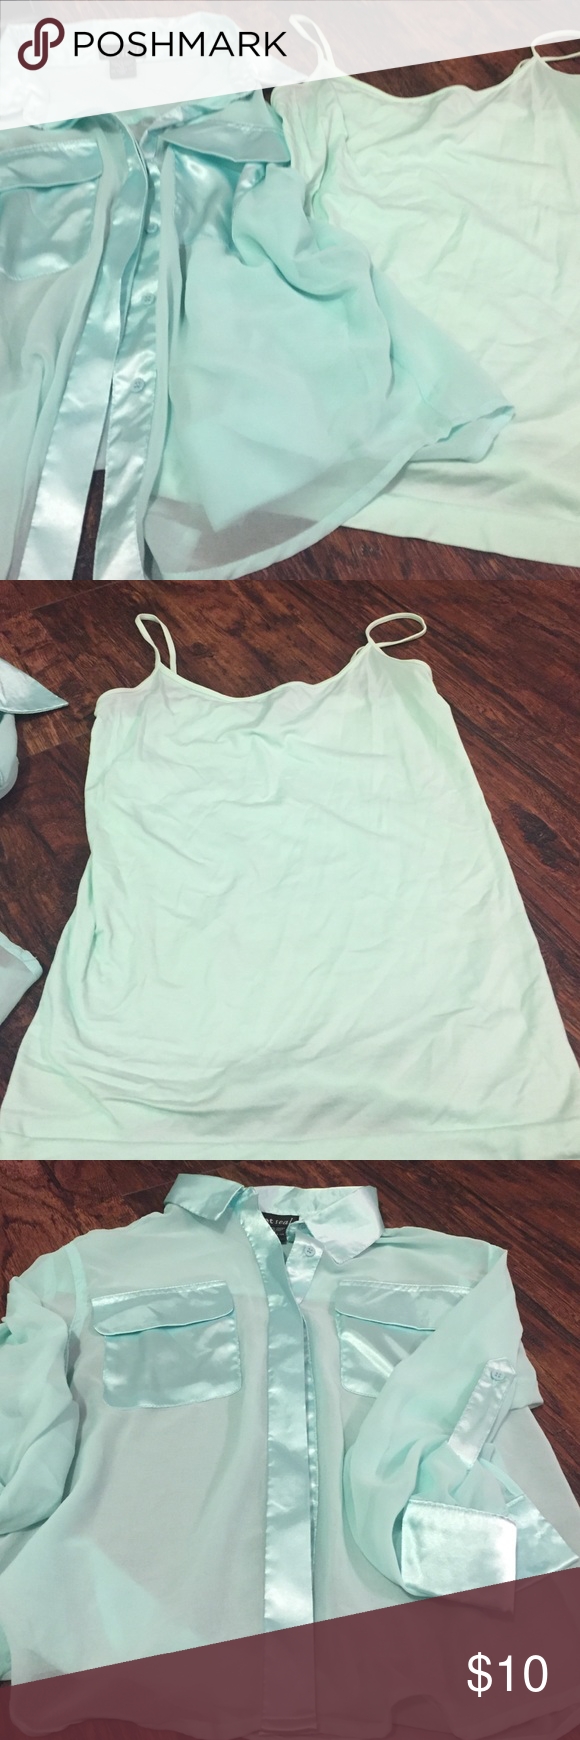 Mint green shirt from Wet Seal with Cami! Mint green shirt from Wet Seal with matching Cami. Both shirts are size Medium.  They have no rips, no tears and come from a smoke free home. Wet Seal Tops Blouses